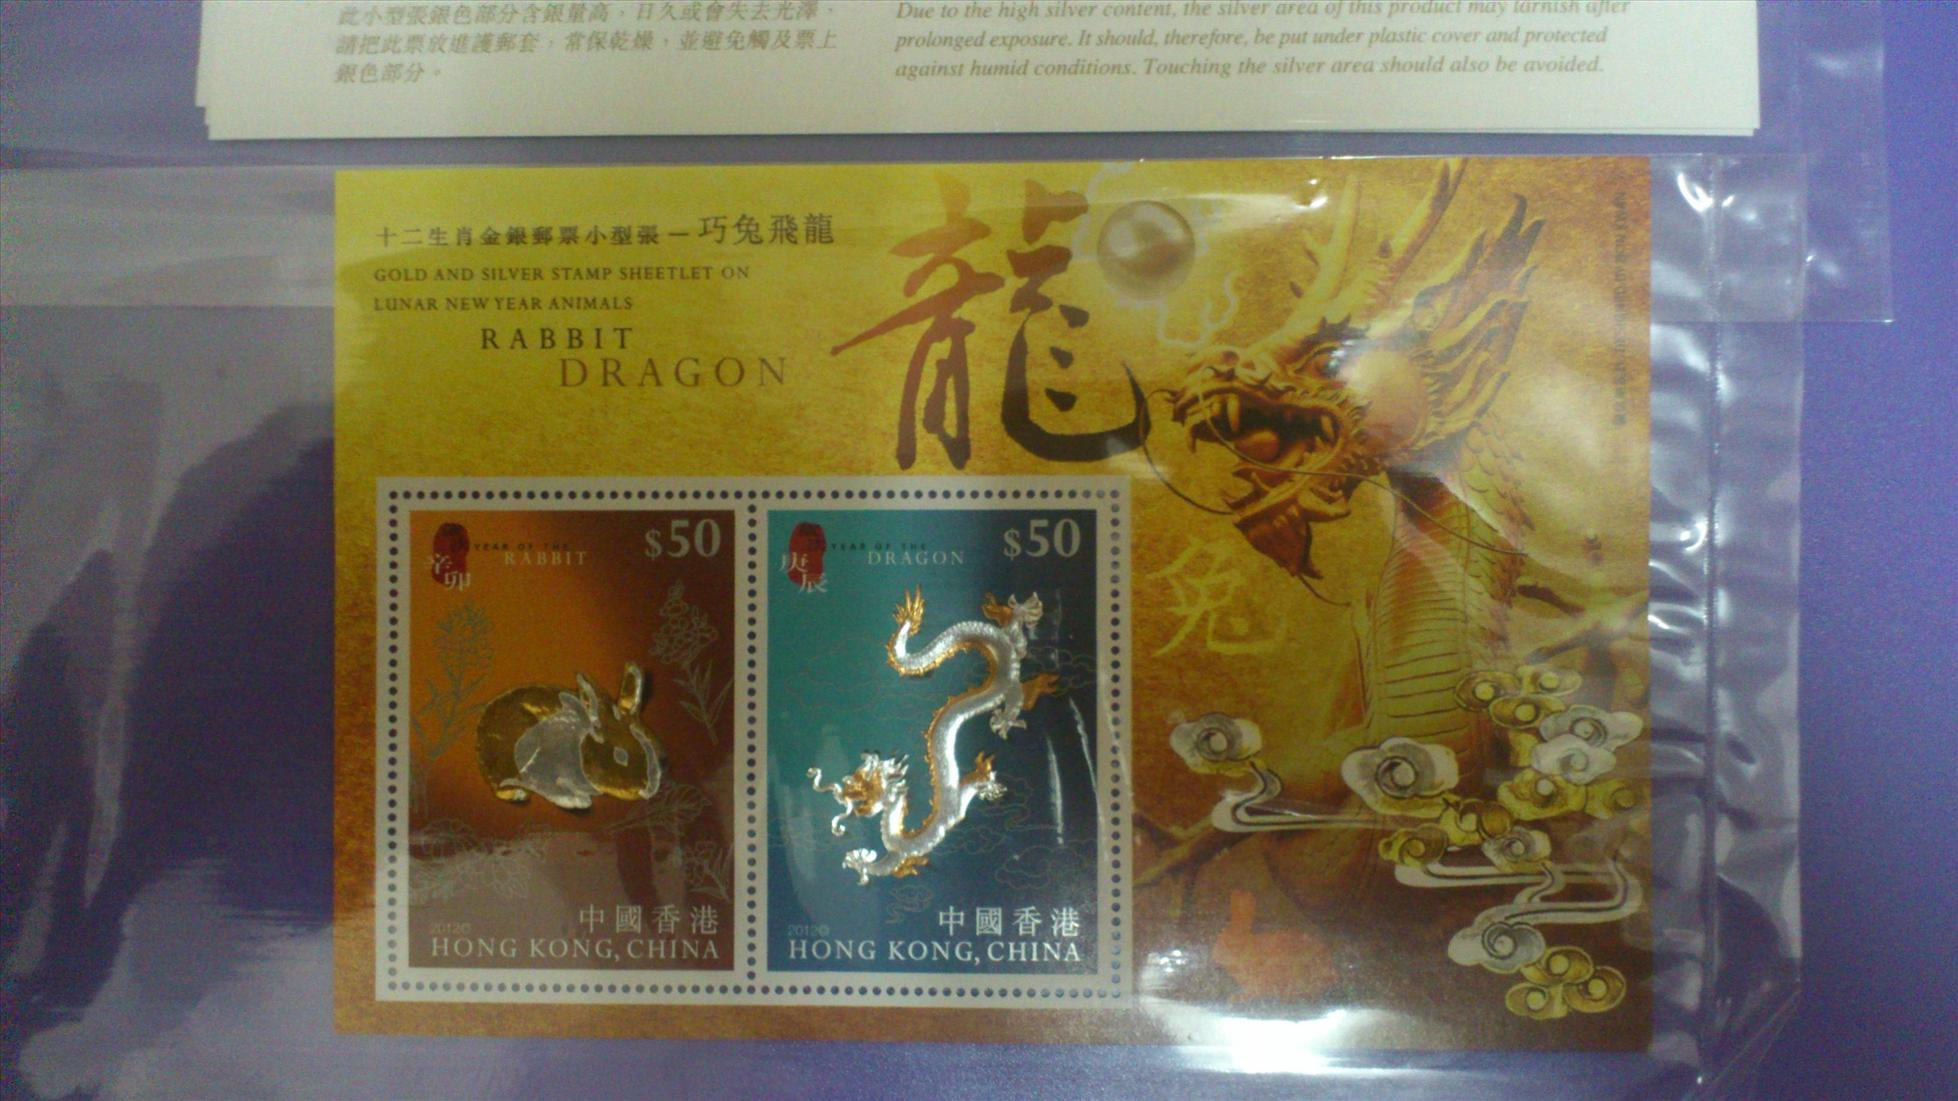 24k Gold & 99.9% Silver - Dragon & Rabbit MS - Hong Kong